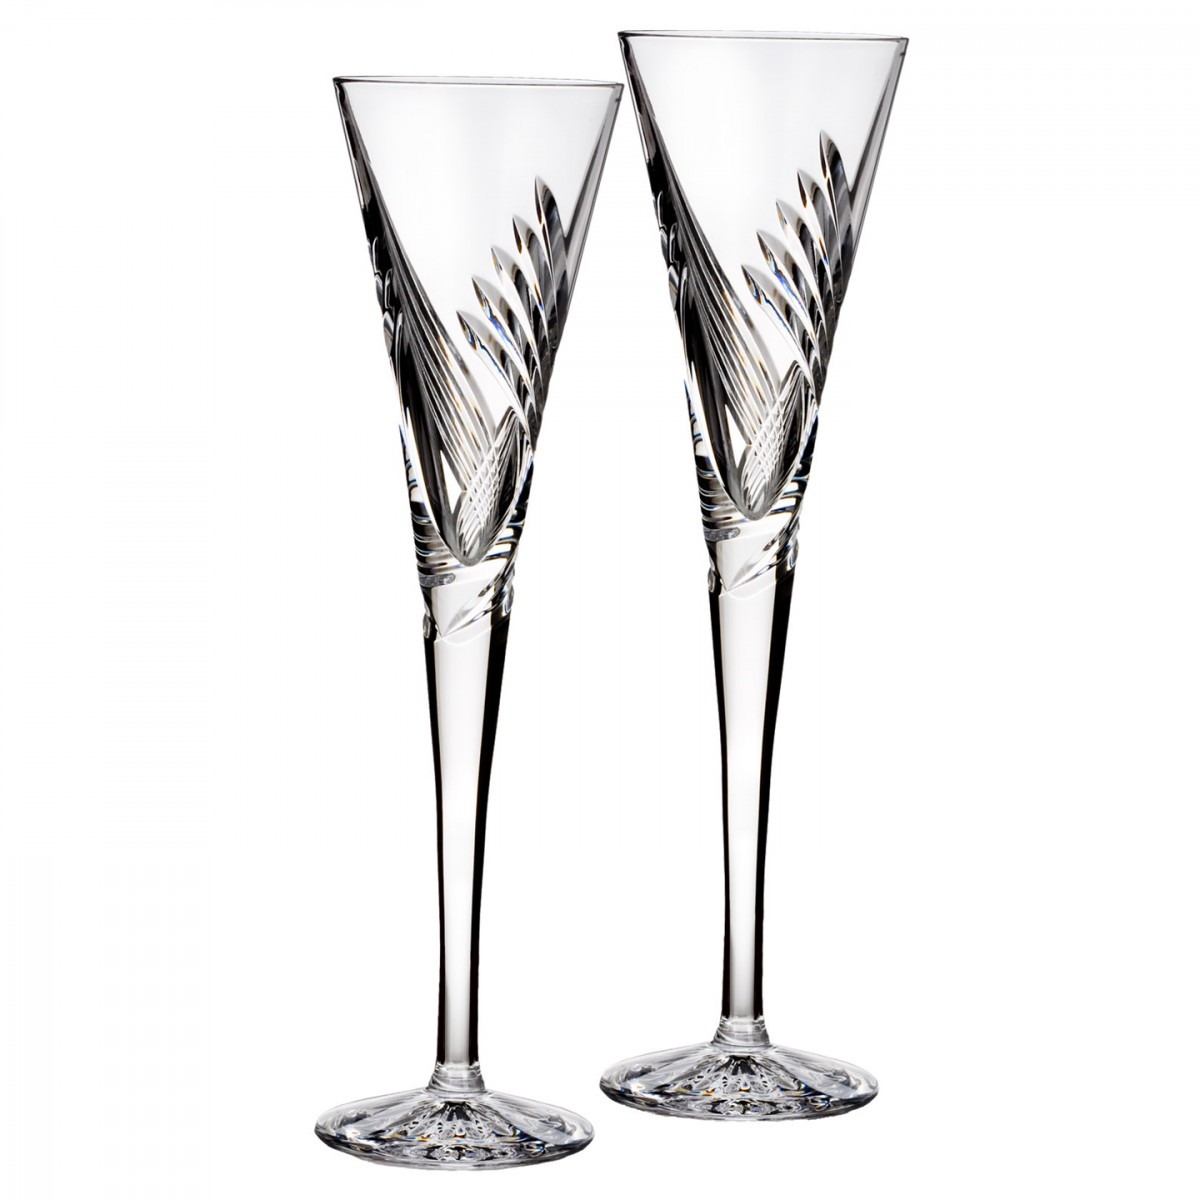 Waterford Crystal, Wishes Beginnings Crystal Flutes, Pair